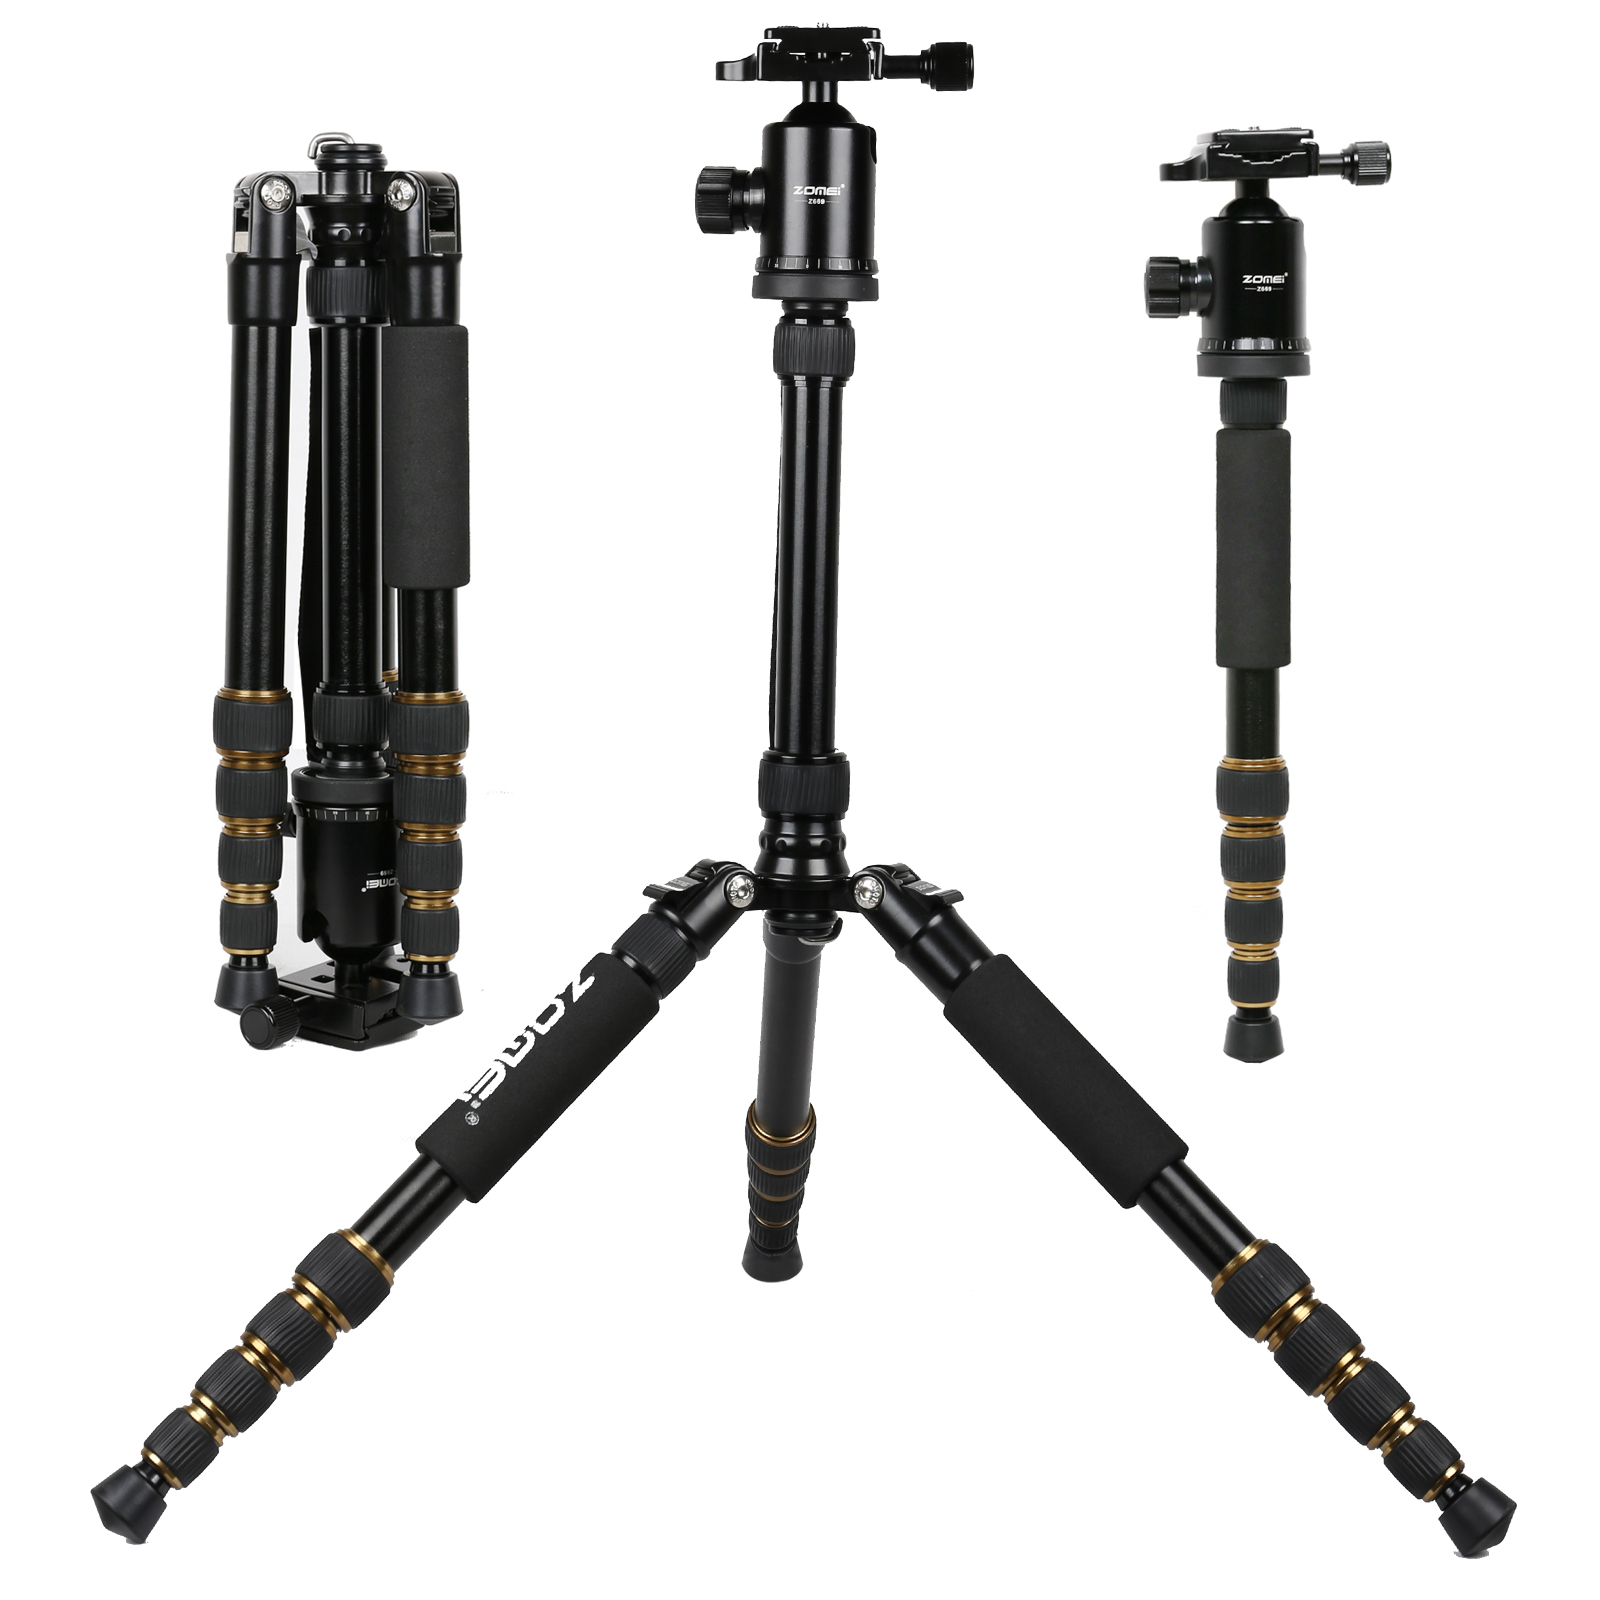 Zomei Z-699 Tripod Micro SLR Camera Traveling Convenient Triangle Frame SLR Photography Tripod Aluminum Alloy Carbon Fibre black benro a38td foot aluminum alloy slr camera videotape alone racks one horned portable triangle frame free shipping